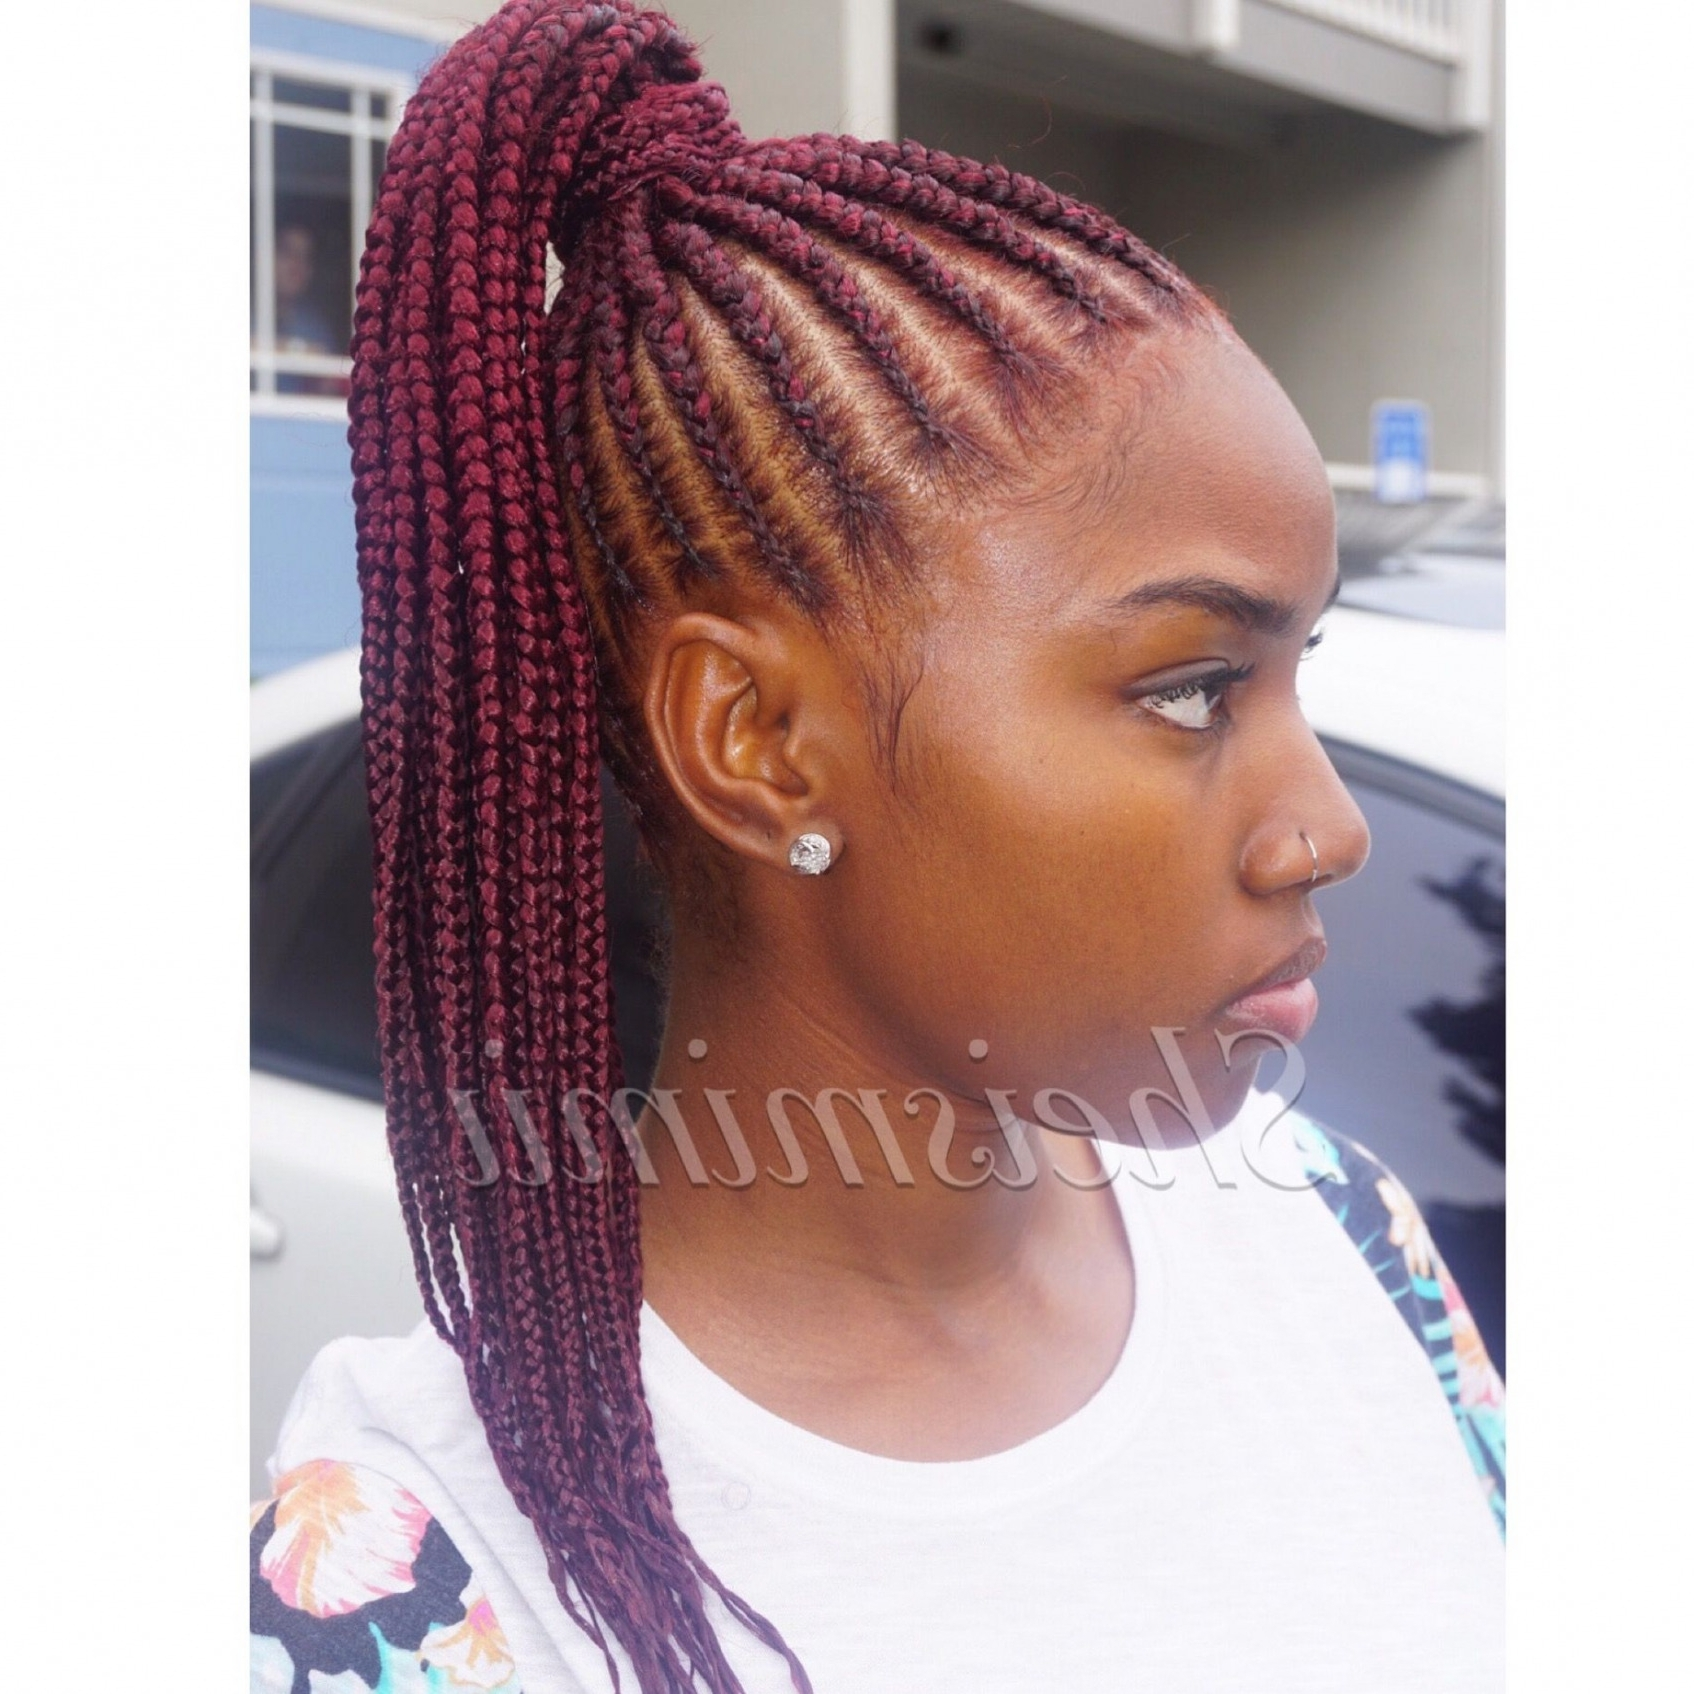 Best And Newest Cornrows Hairstyles For Long Ponytail Pertaining To Cornrow Hairstyles For Black Women 2015 With Ponytail (View 4 of 20)